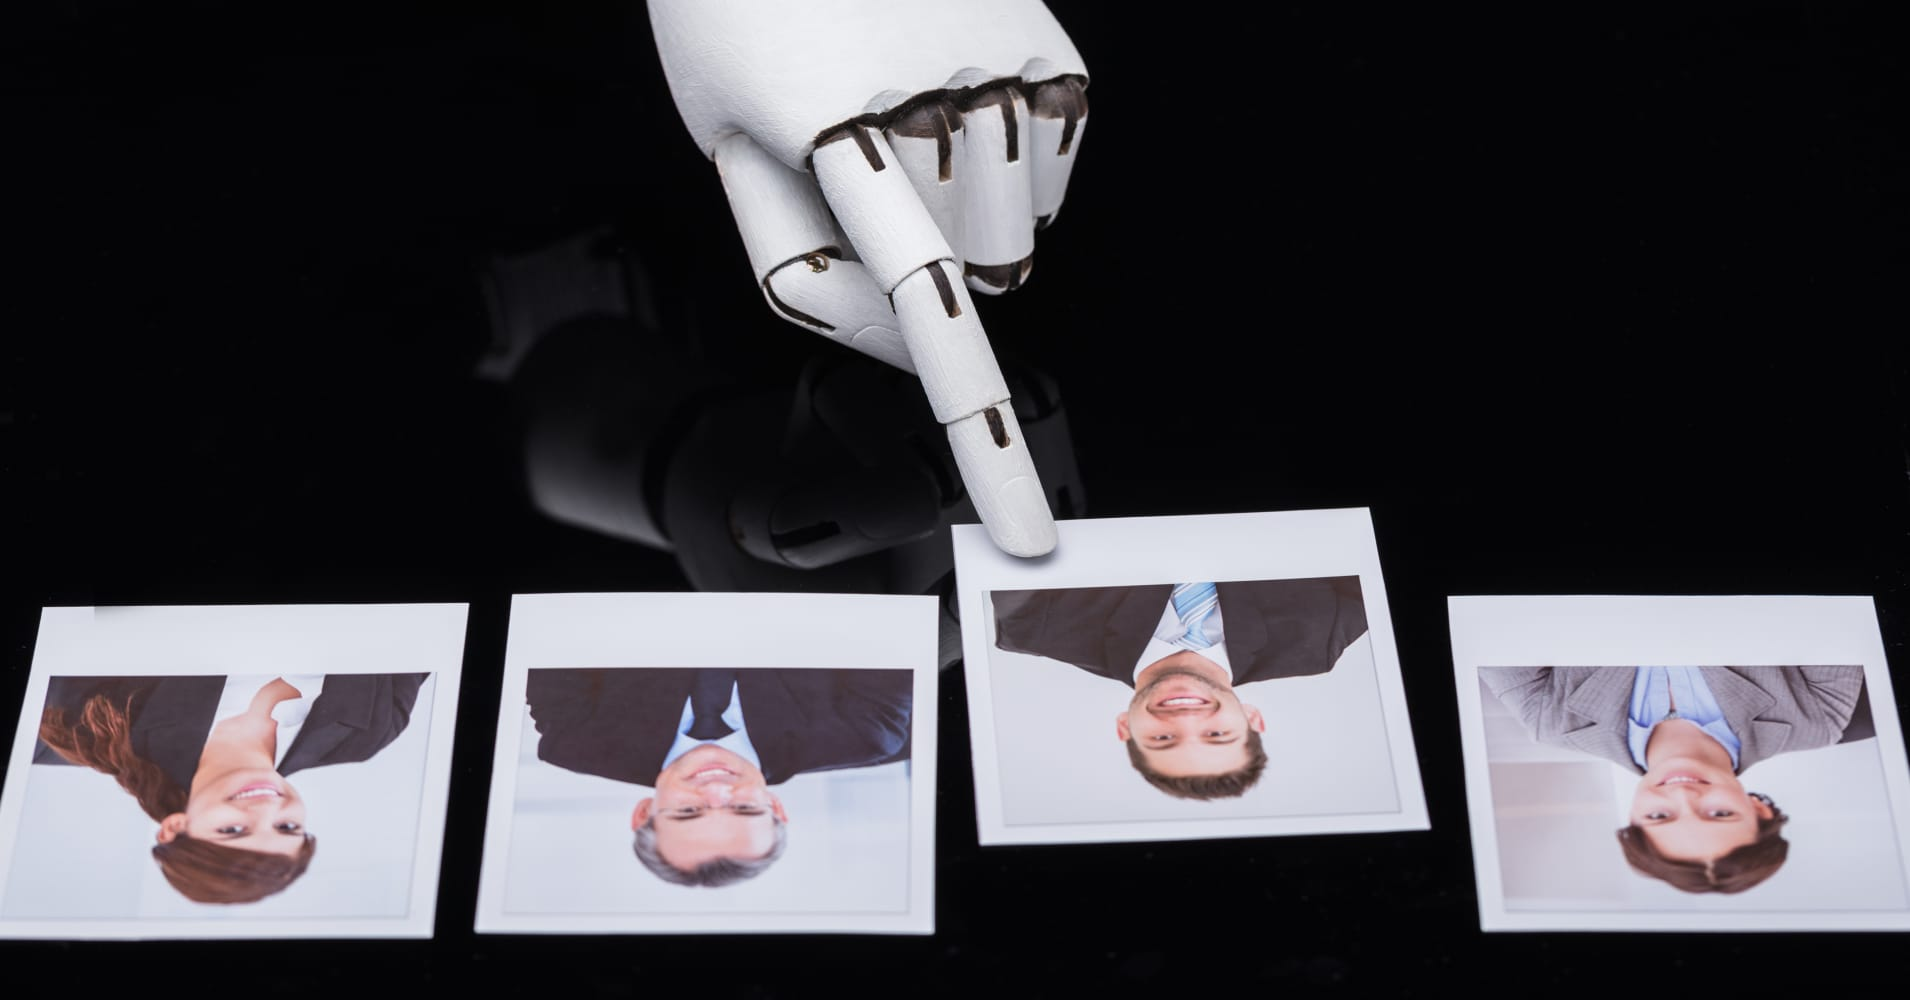 Your Next Job Interview Could Be with a Robot